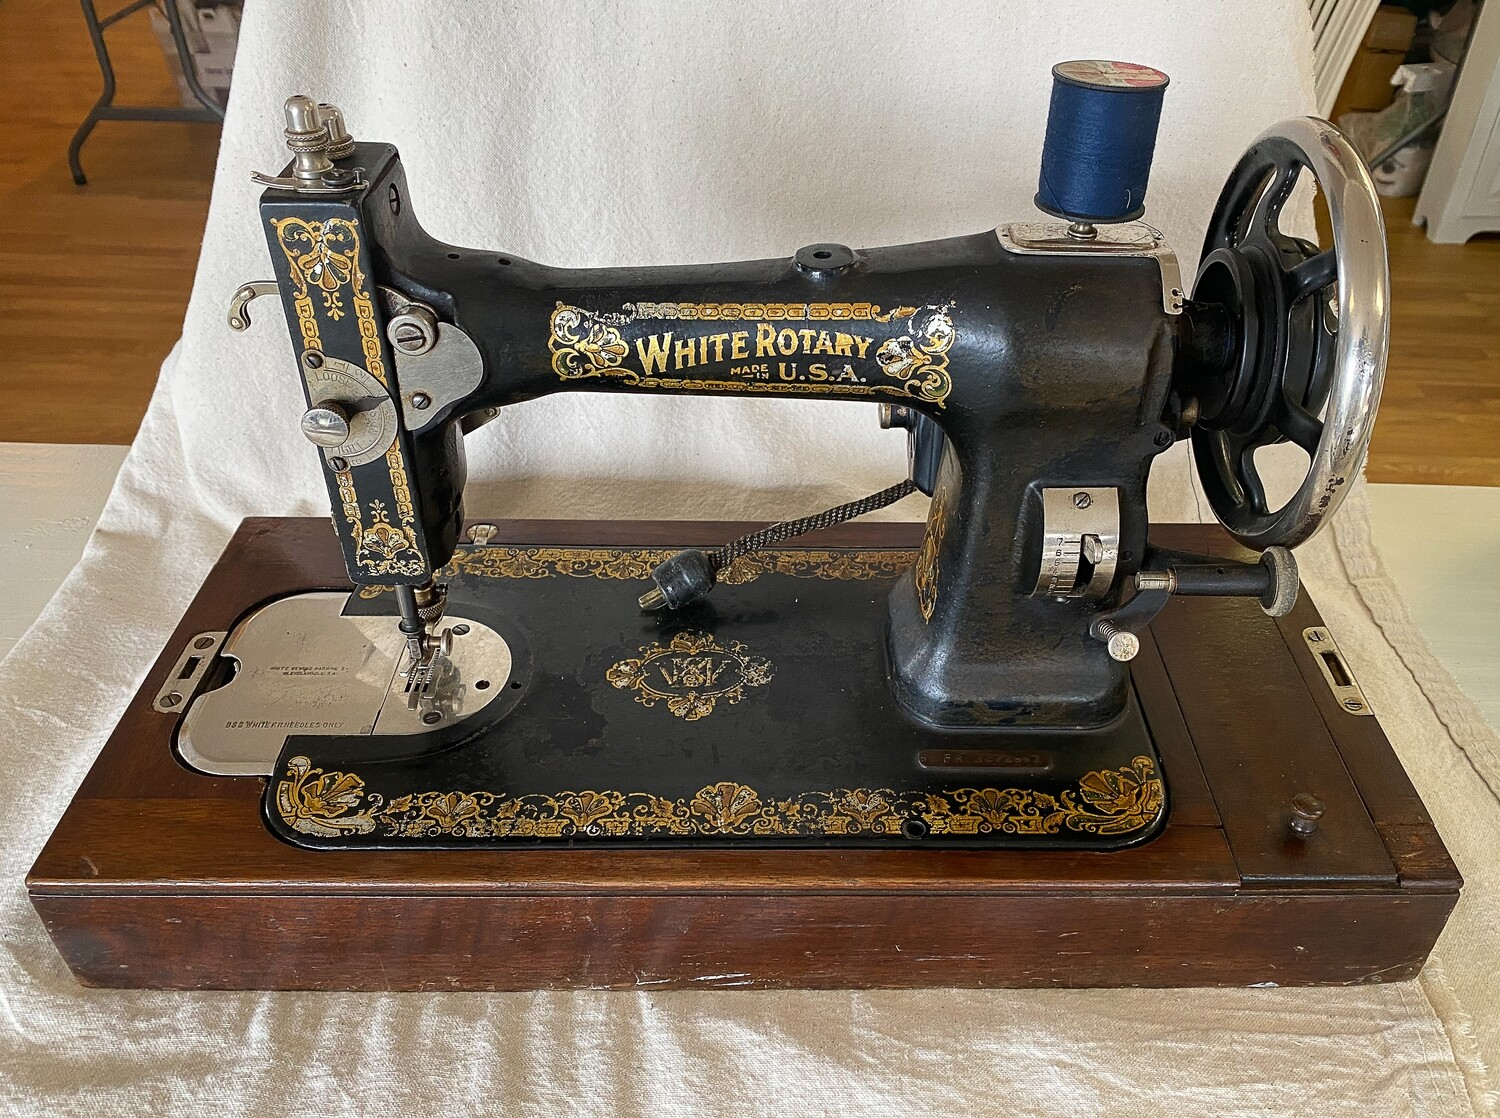 Antique White Rotary Sewing Machine in Wood Case